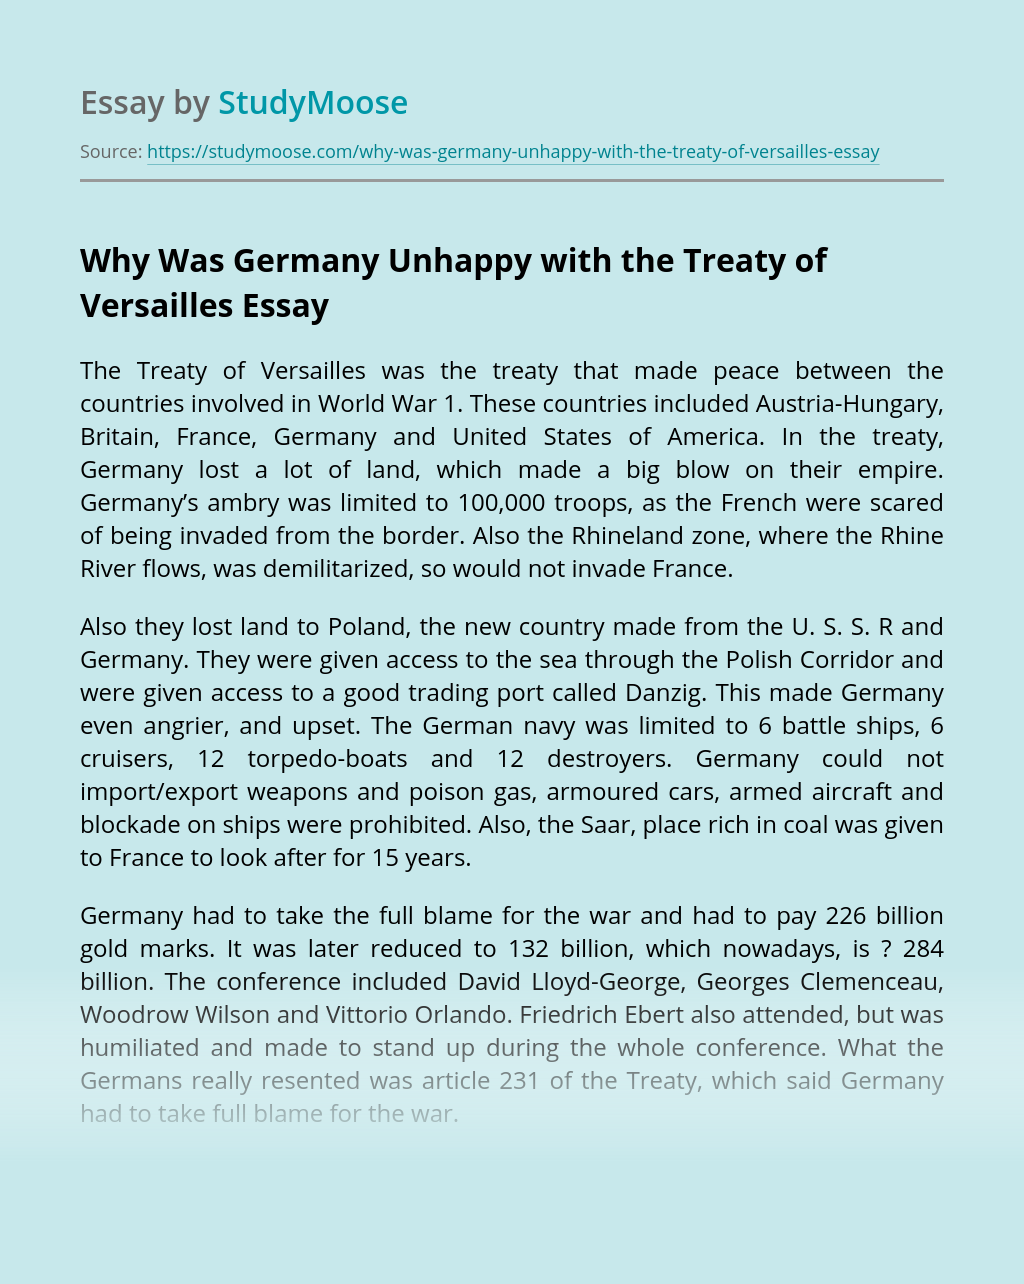 Why Was Germany Unhappy with the Treaty of Versailles